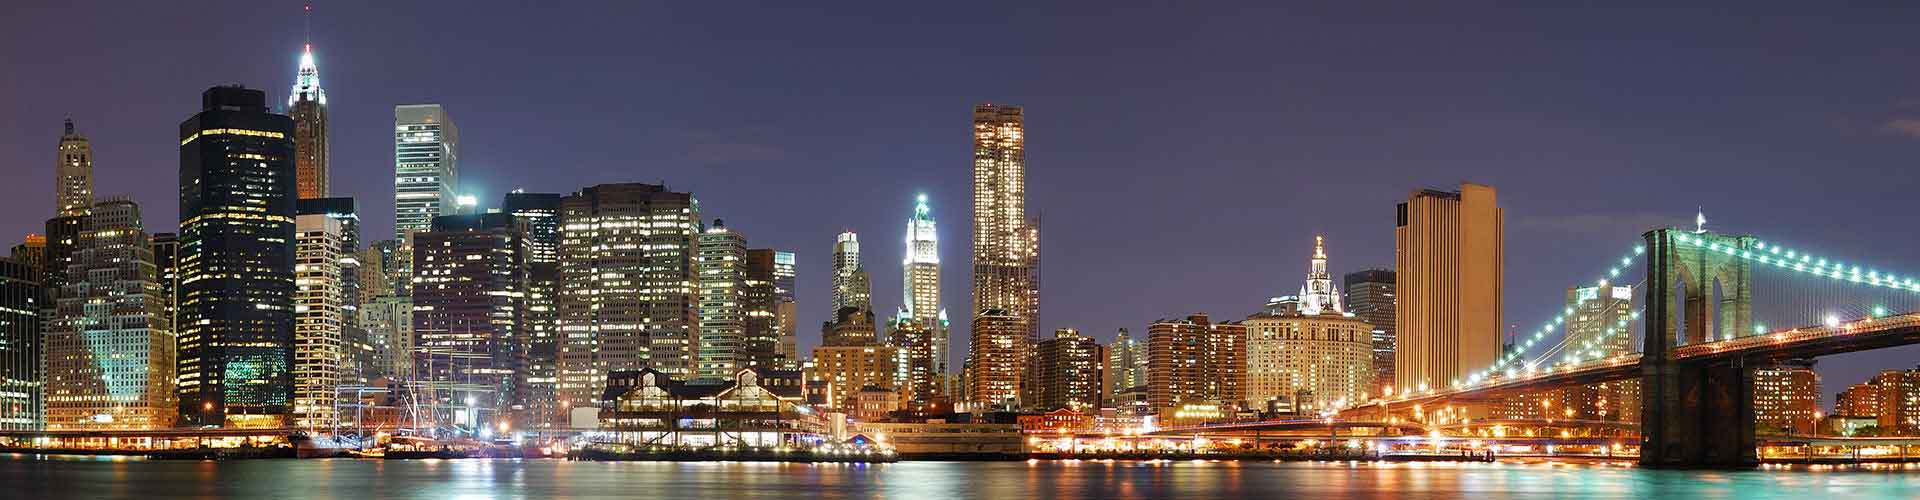 Seconda volta a new york cosa vedere tgtourism for Appartamenti vacanze new york city manhattan